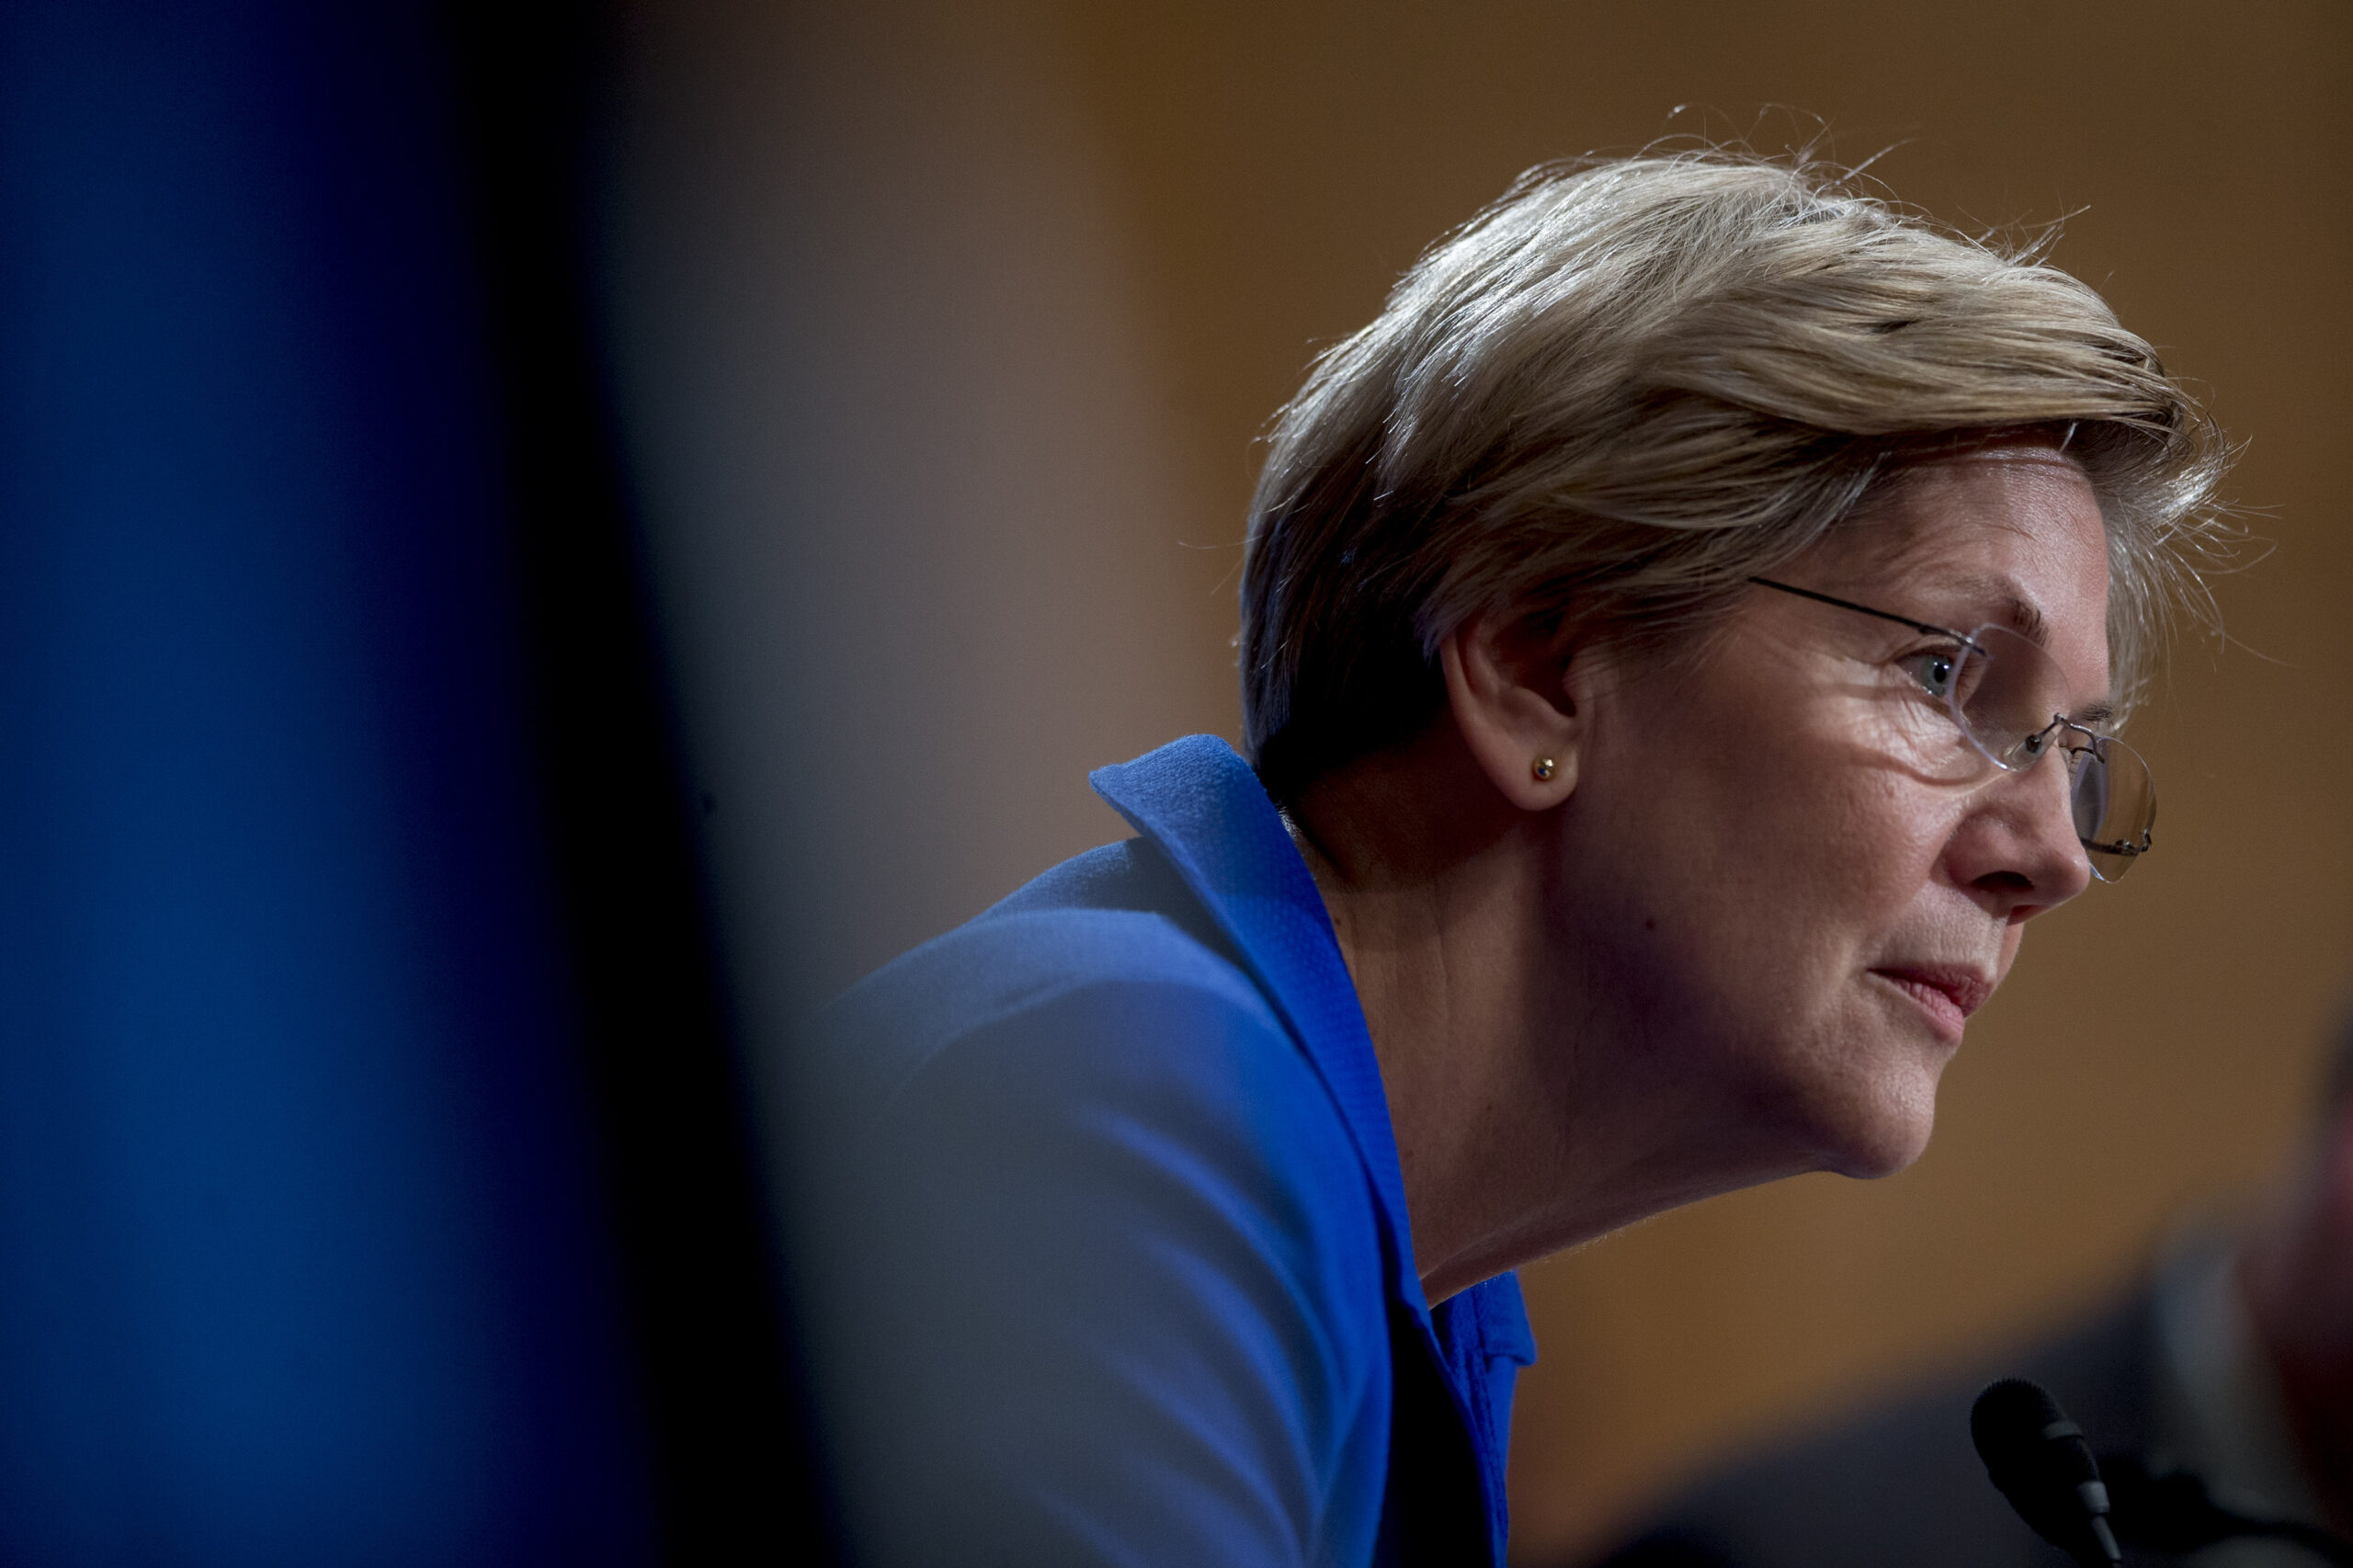 Senator Warren urges US to explore conditioning aid to Israel to help it 'adjust course